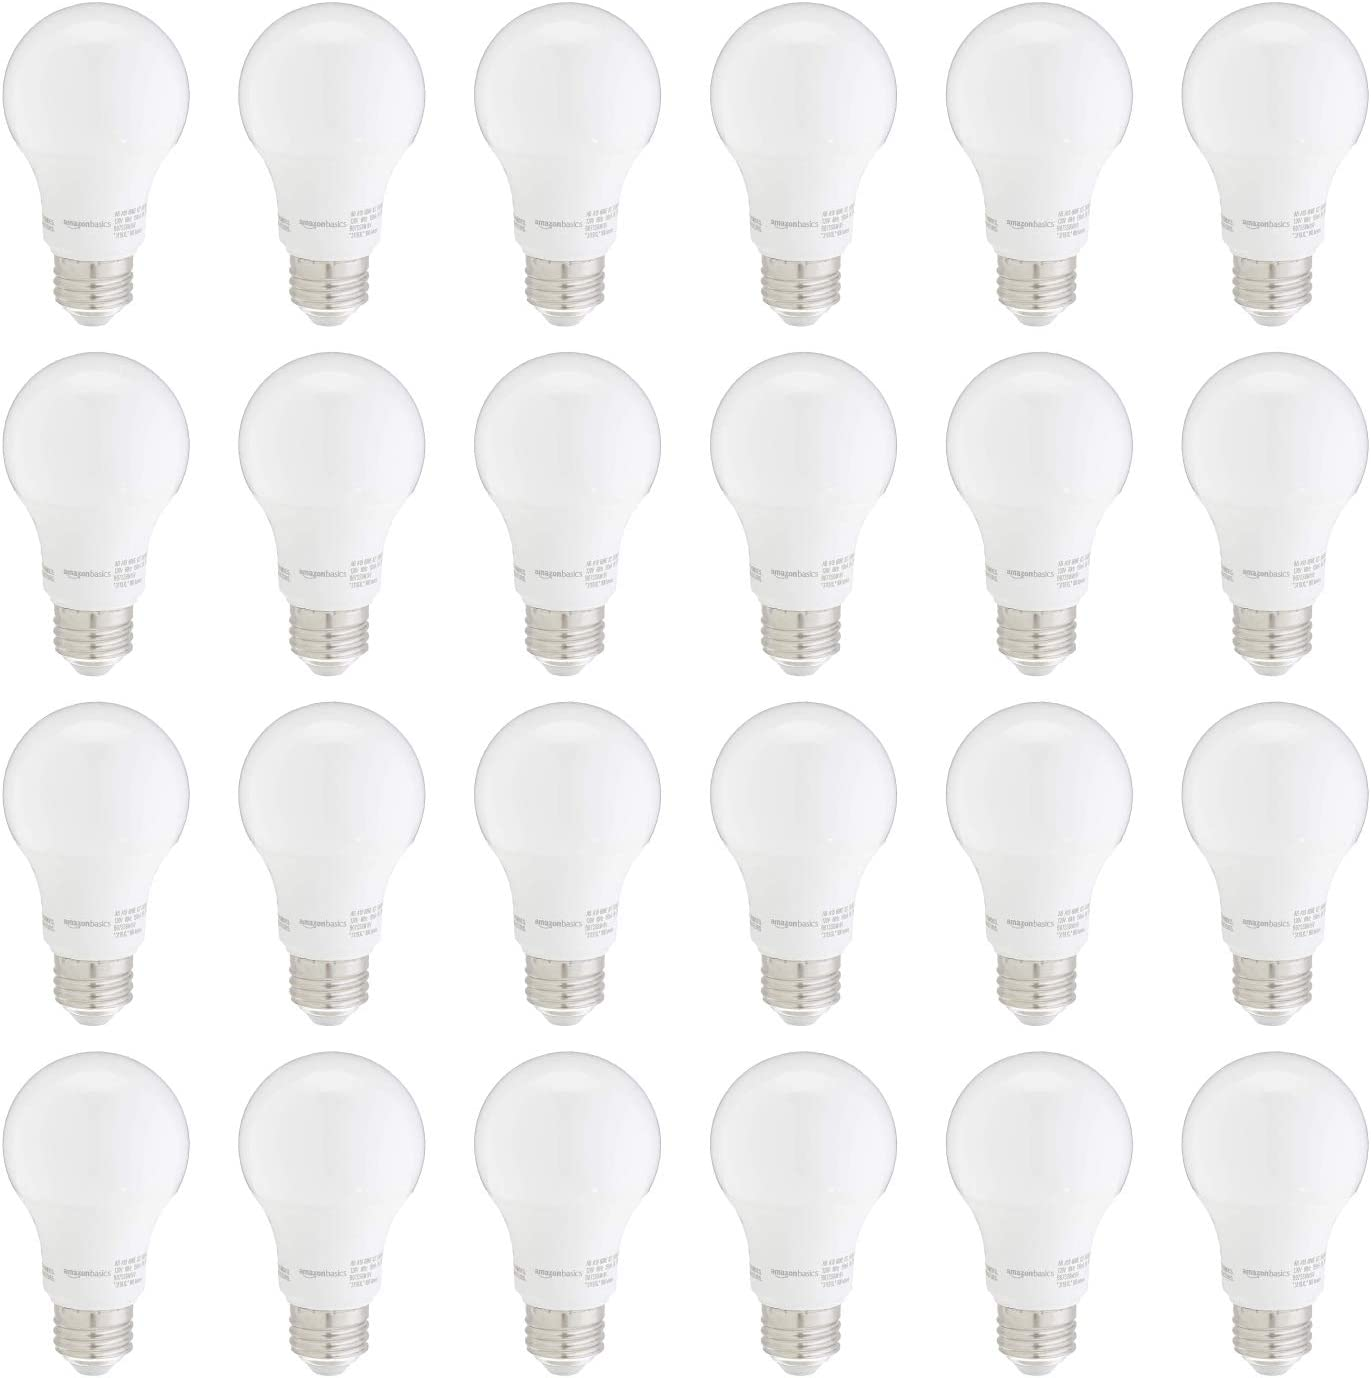 AmazonBasics 60W Equivalent, Daylight, Non-Dimmable, 10,000 Hour Lifetime, A19 LED Light Bulb | 24-Pack